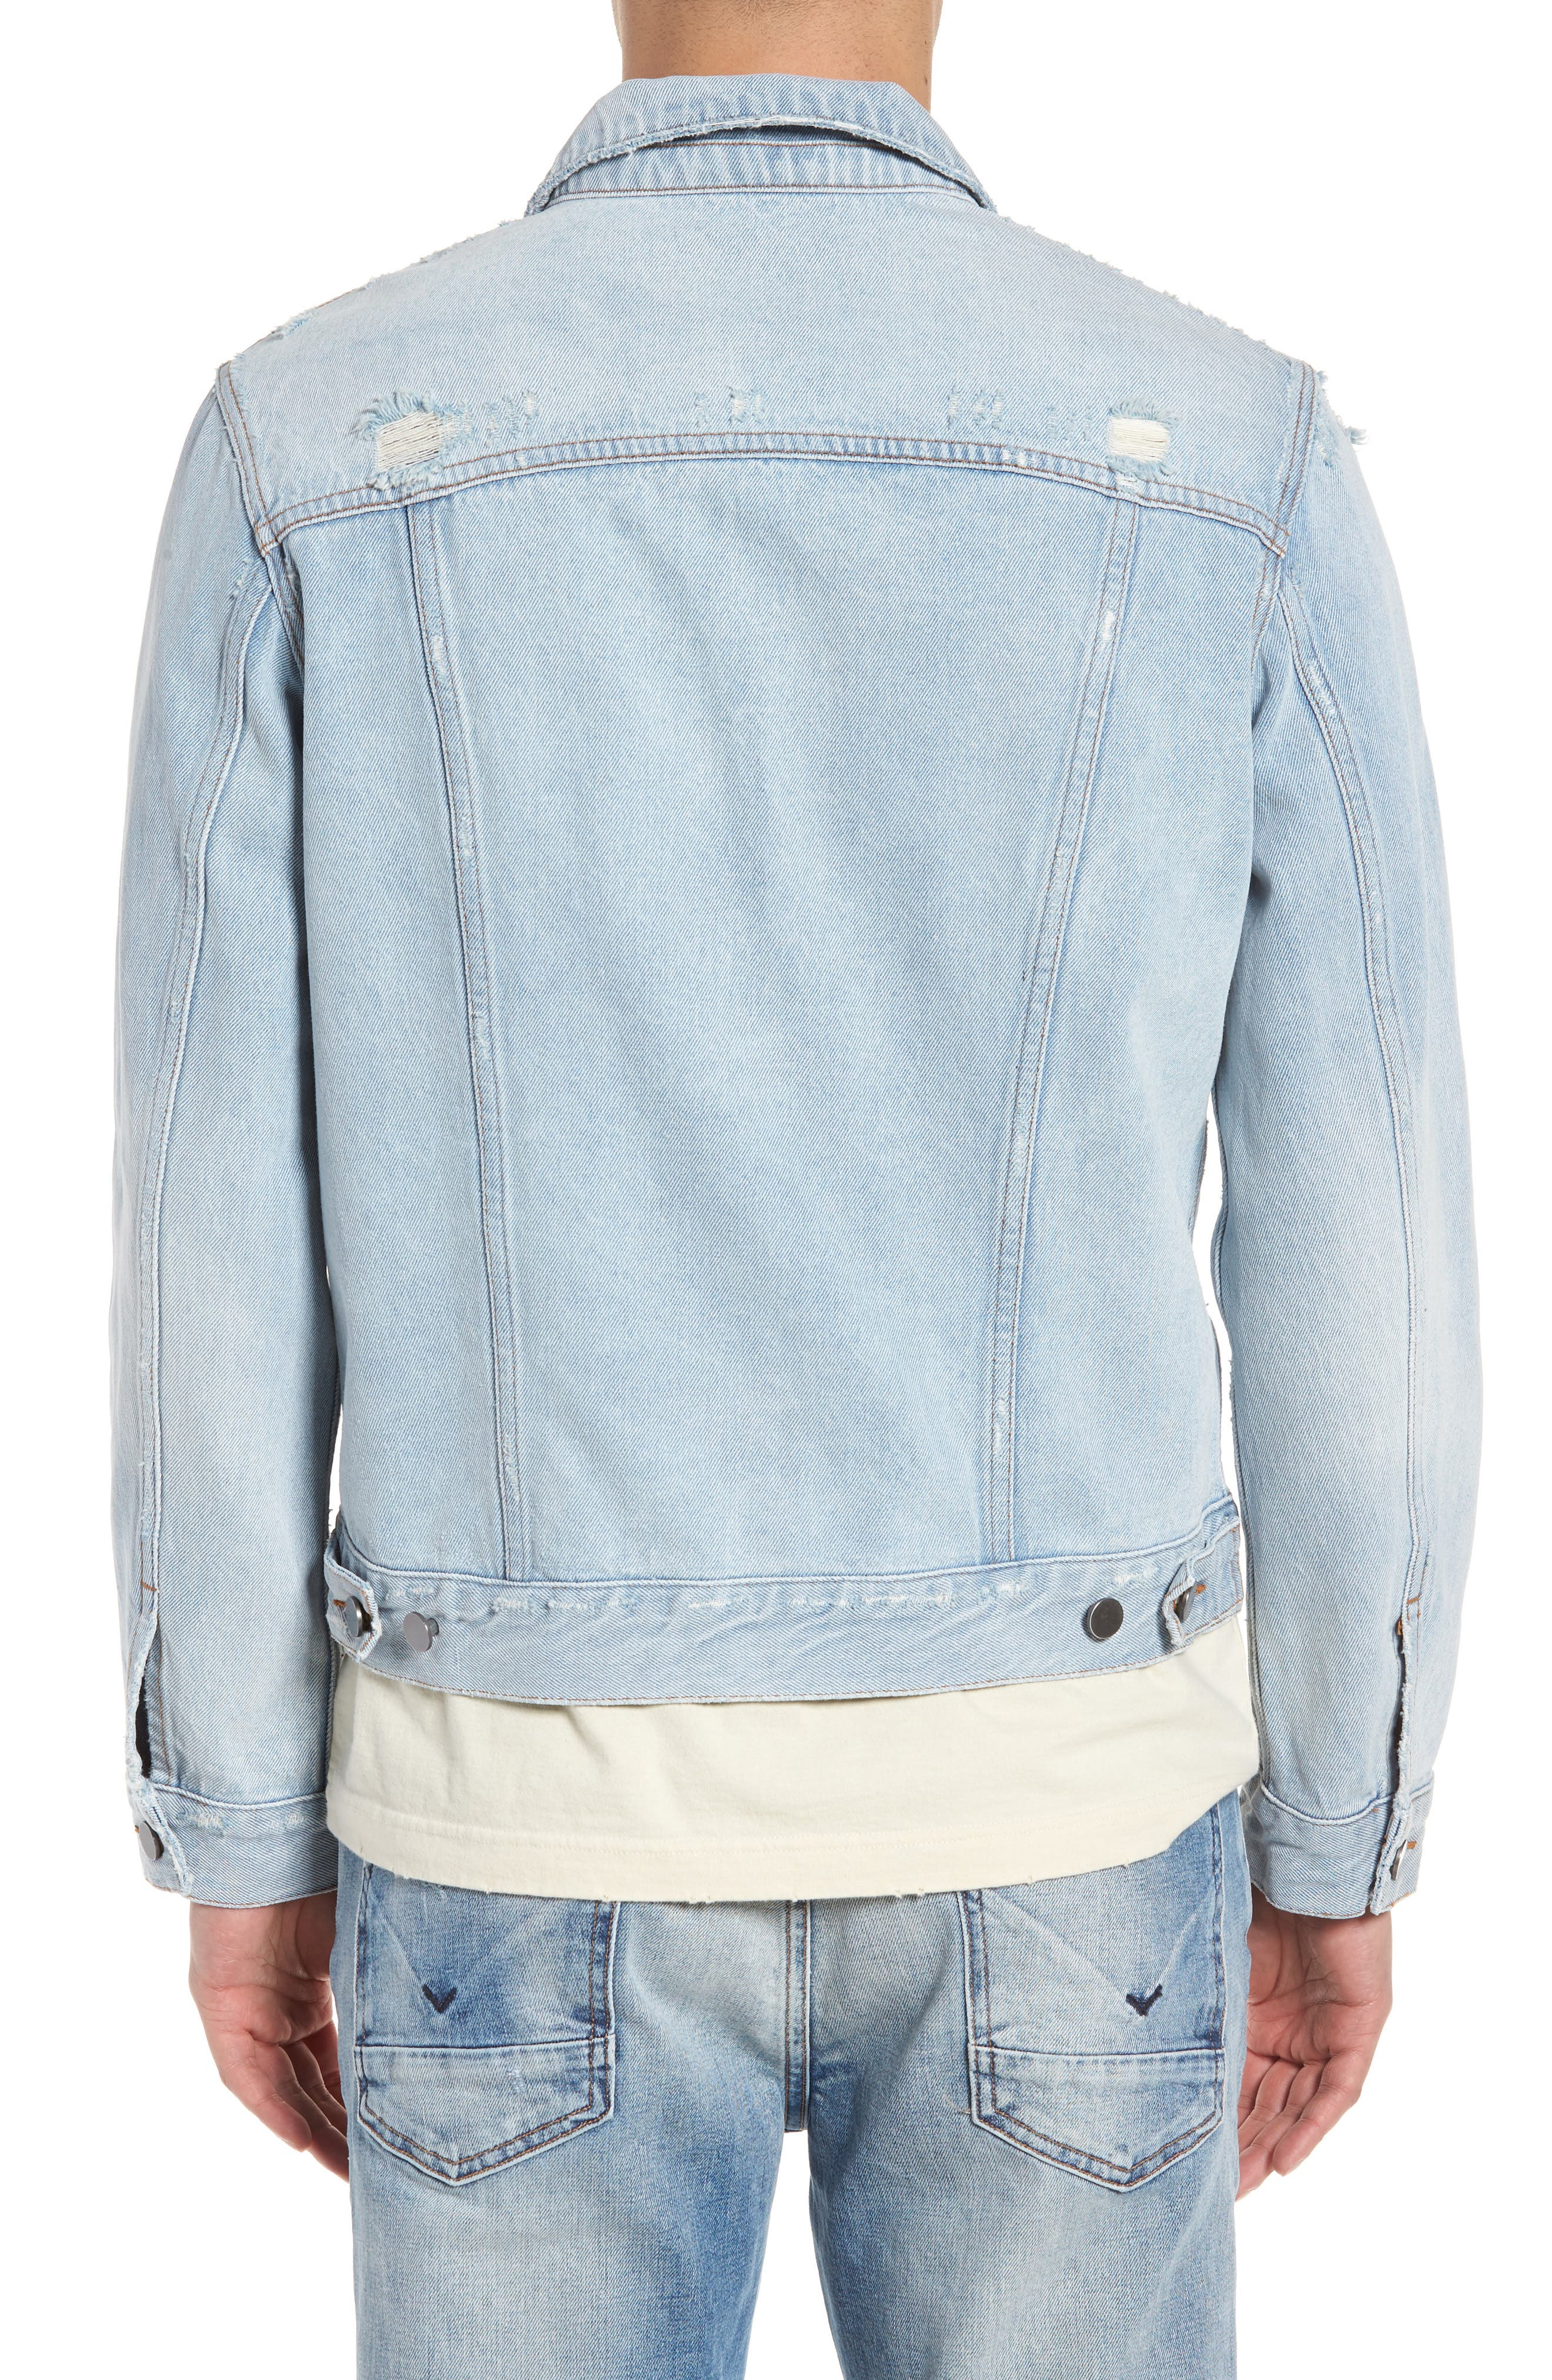 Destroyed Trucker Jacket,                             Alternate thumbnail 2, color,                             Light Blue Wash